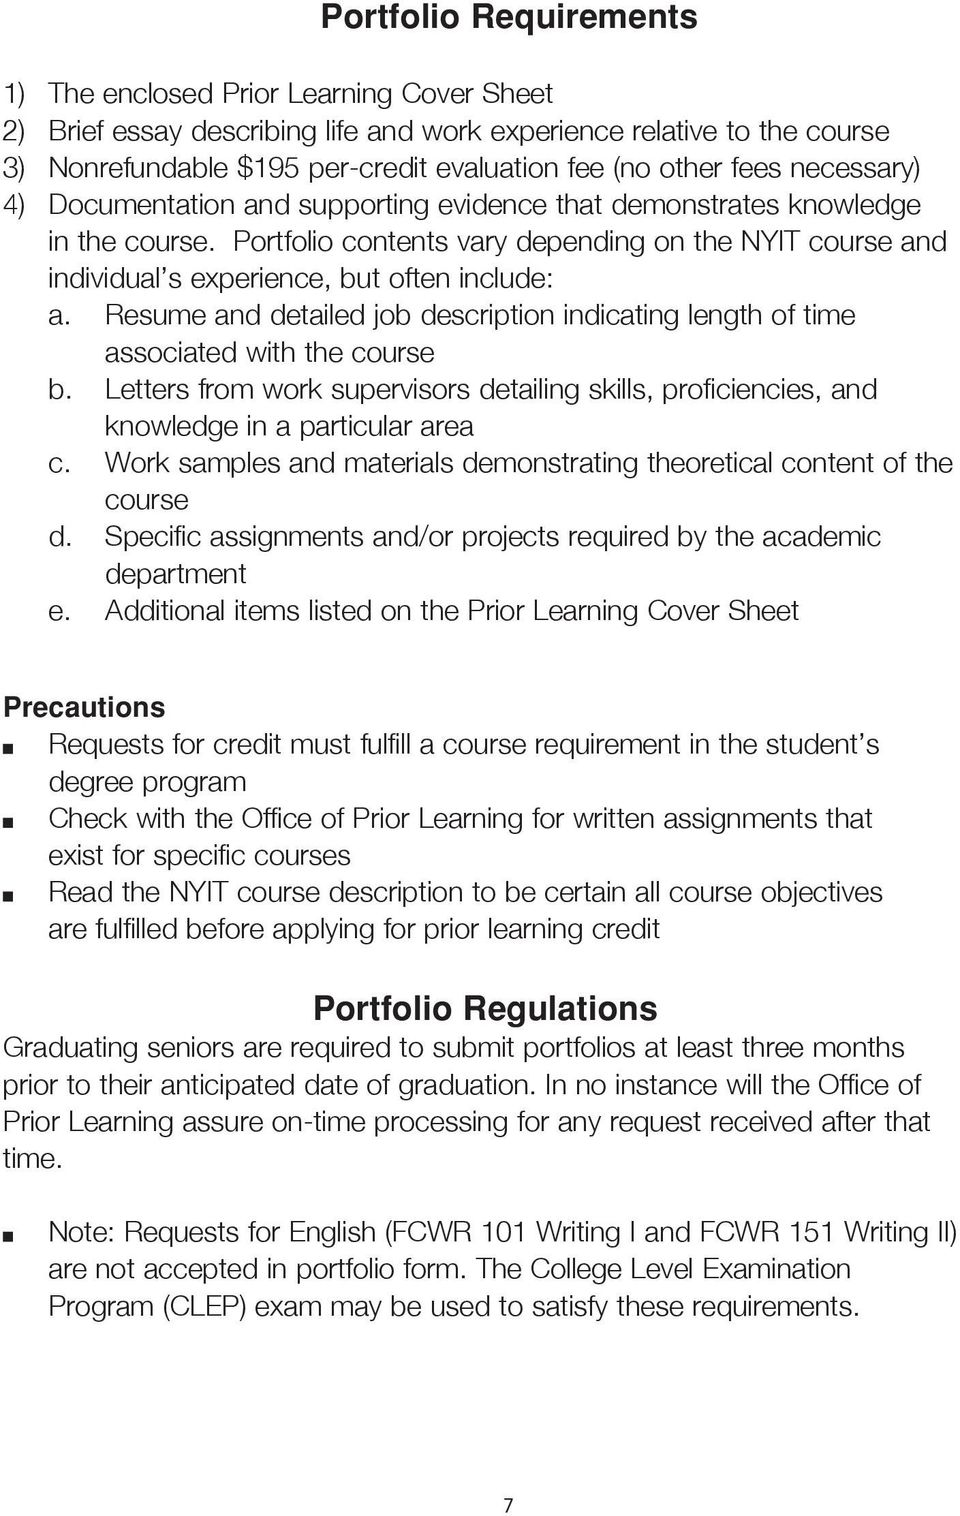 Portfolio contents vary depending on the NYIT course and individual s experience, but often include: a. Resume and detailed job description indicating length of time associated with the course b.